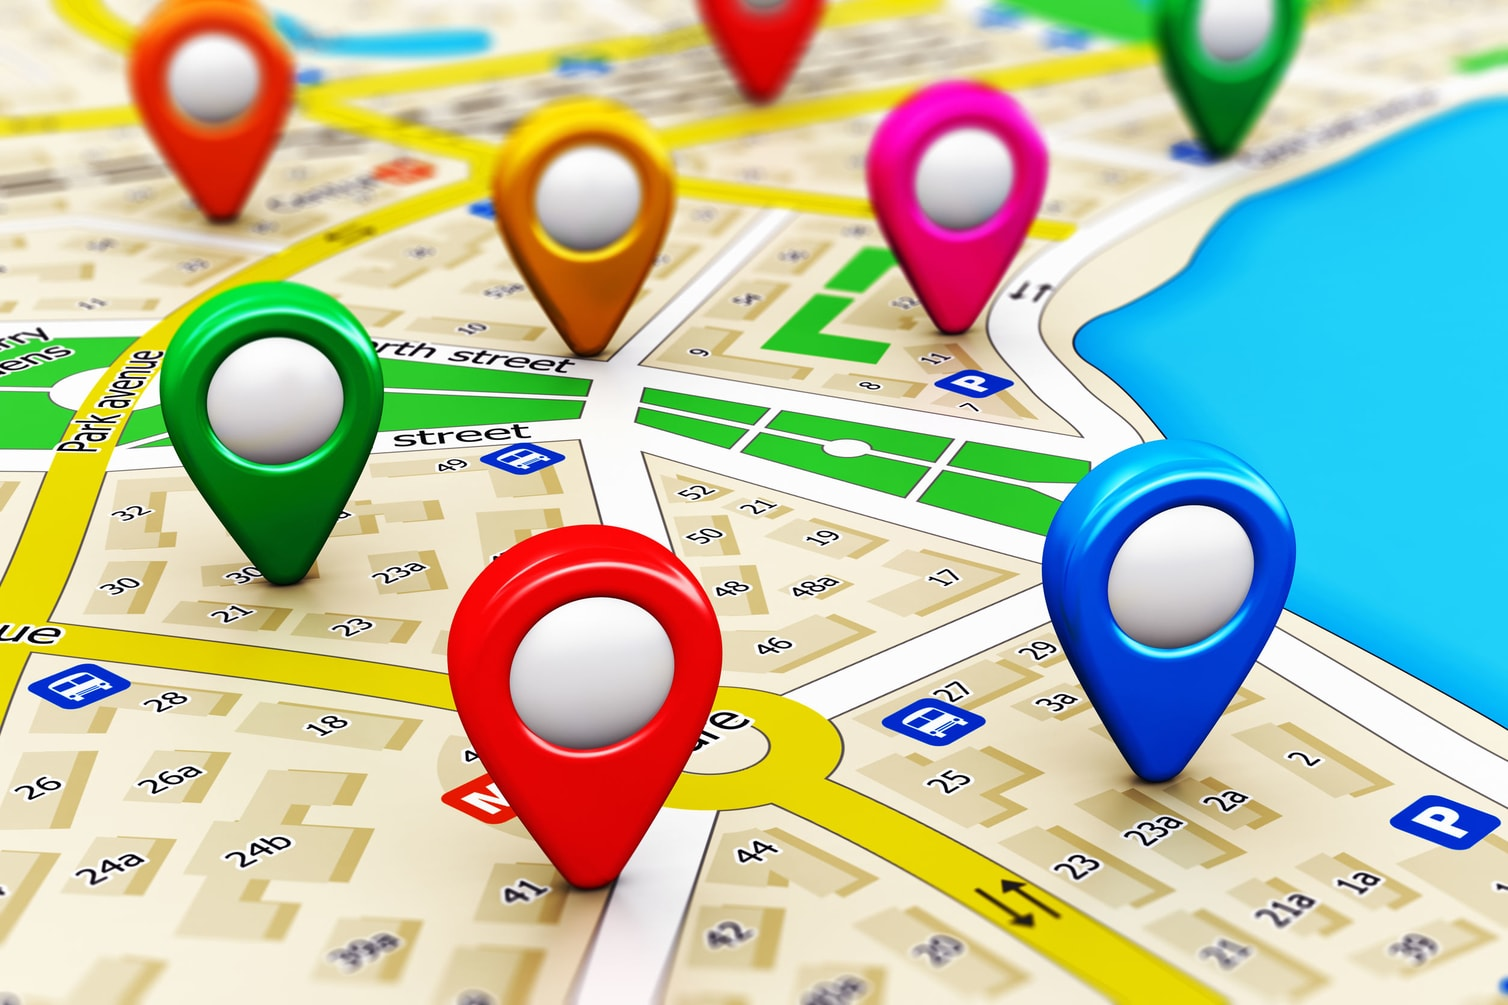 Looking for a Delivery Route Planner App? Here's what you need to know